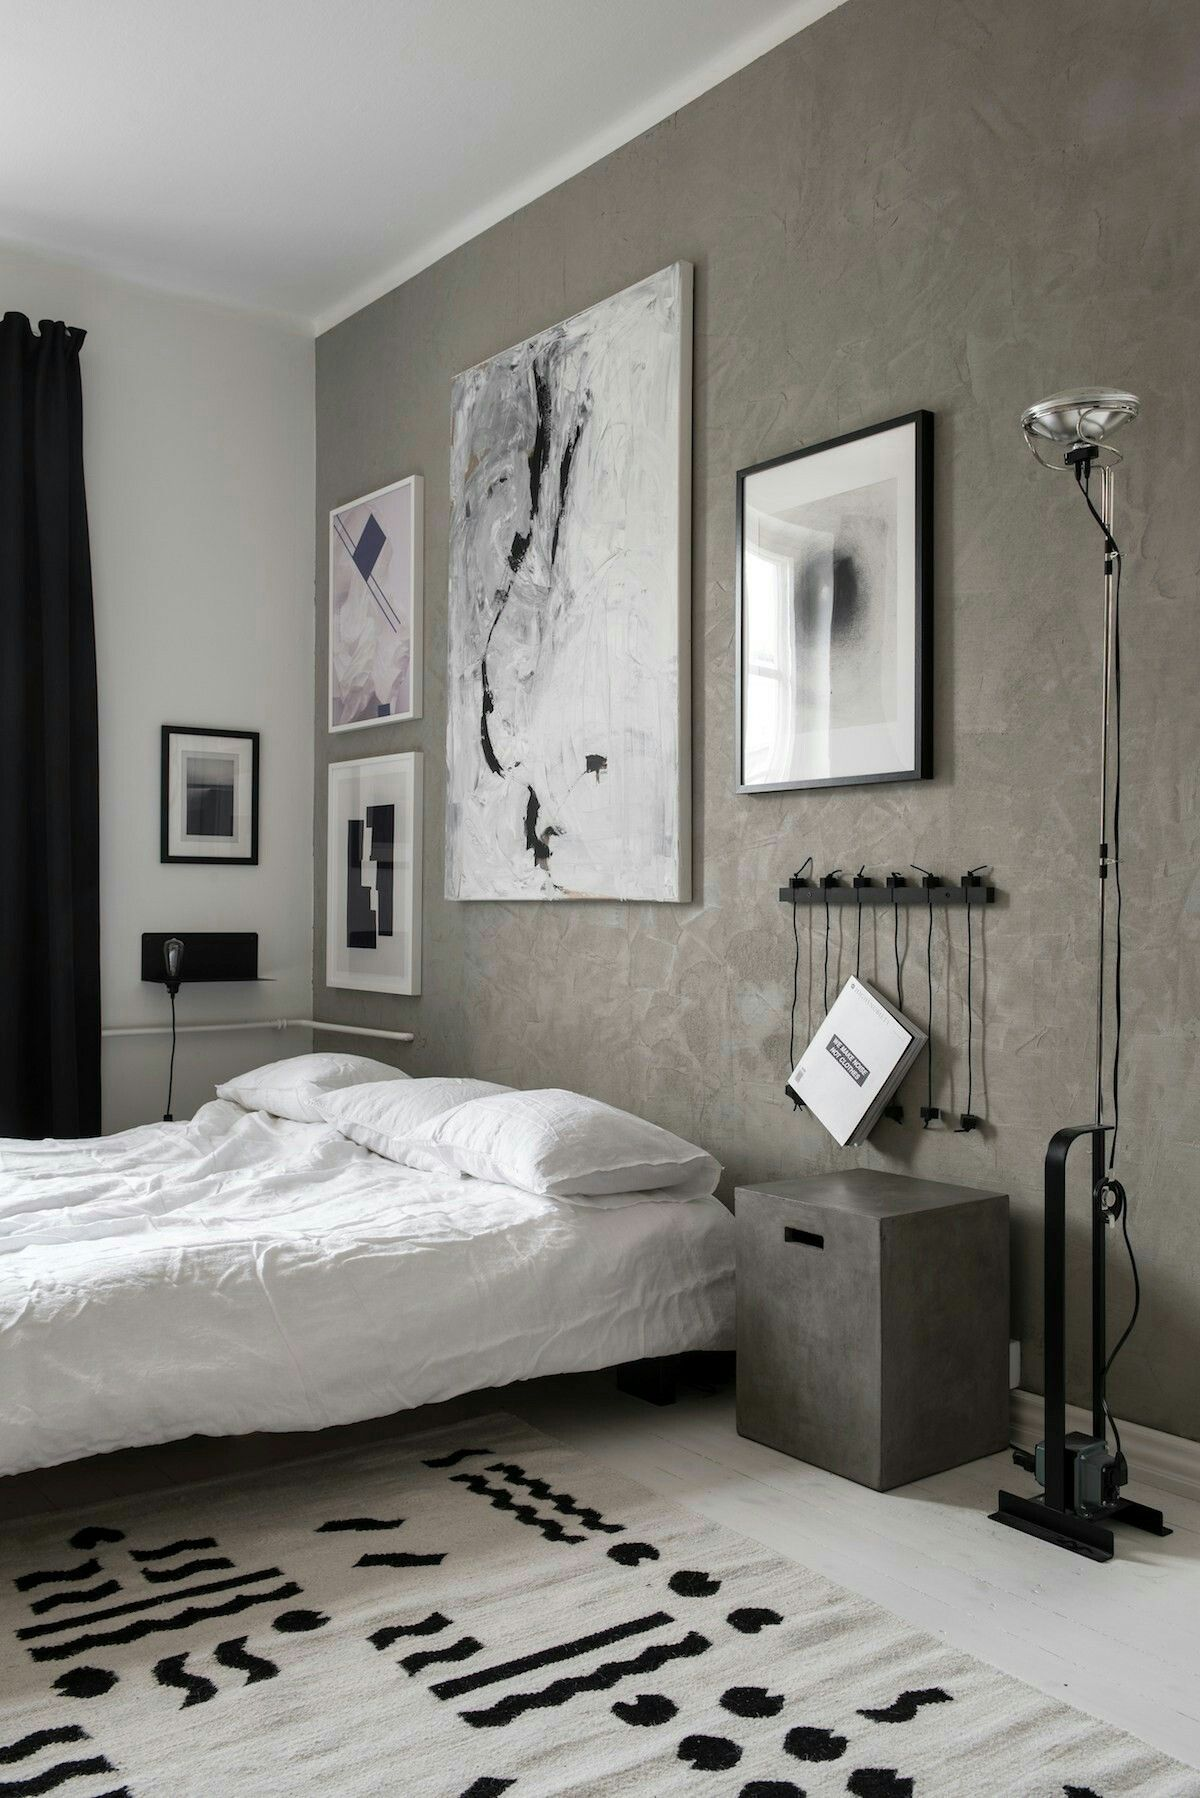 Bedroom With Textured Walls Design By Laura Sepp Nen, Photo